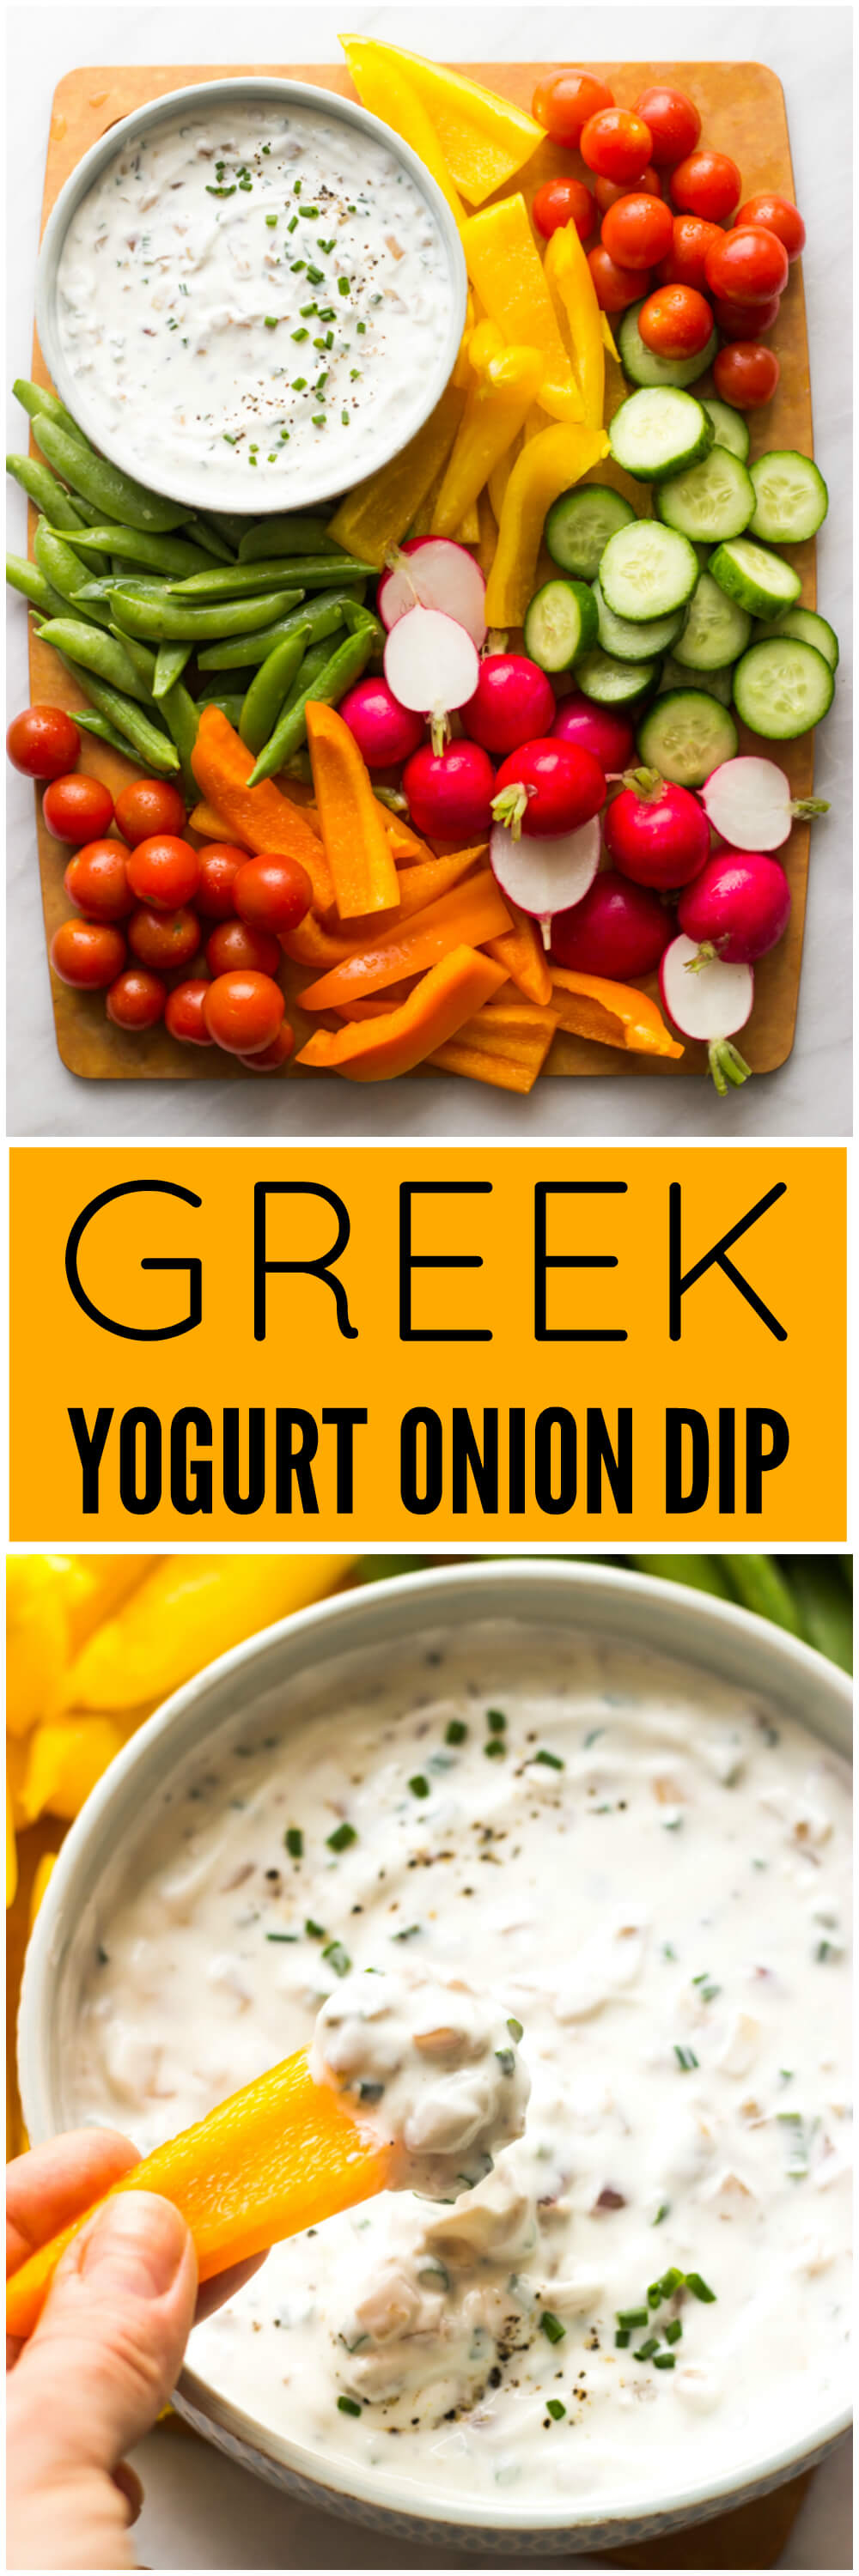 Greek Yogurt Onion Dip - healthy onion dip made with Greek yogurt, caramelized shallots, and chives. Only 66 cal per serving! | littlebroken.com @littlebroken